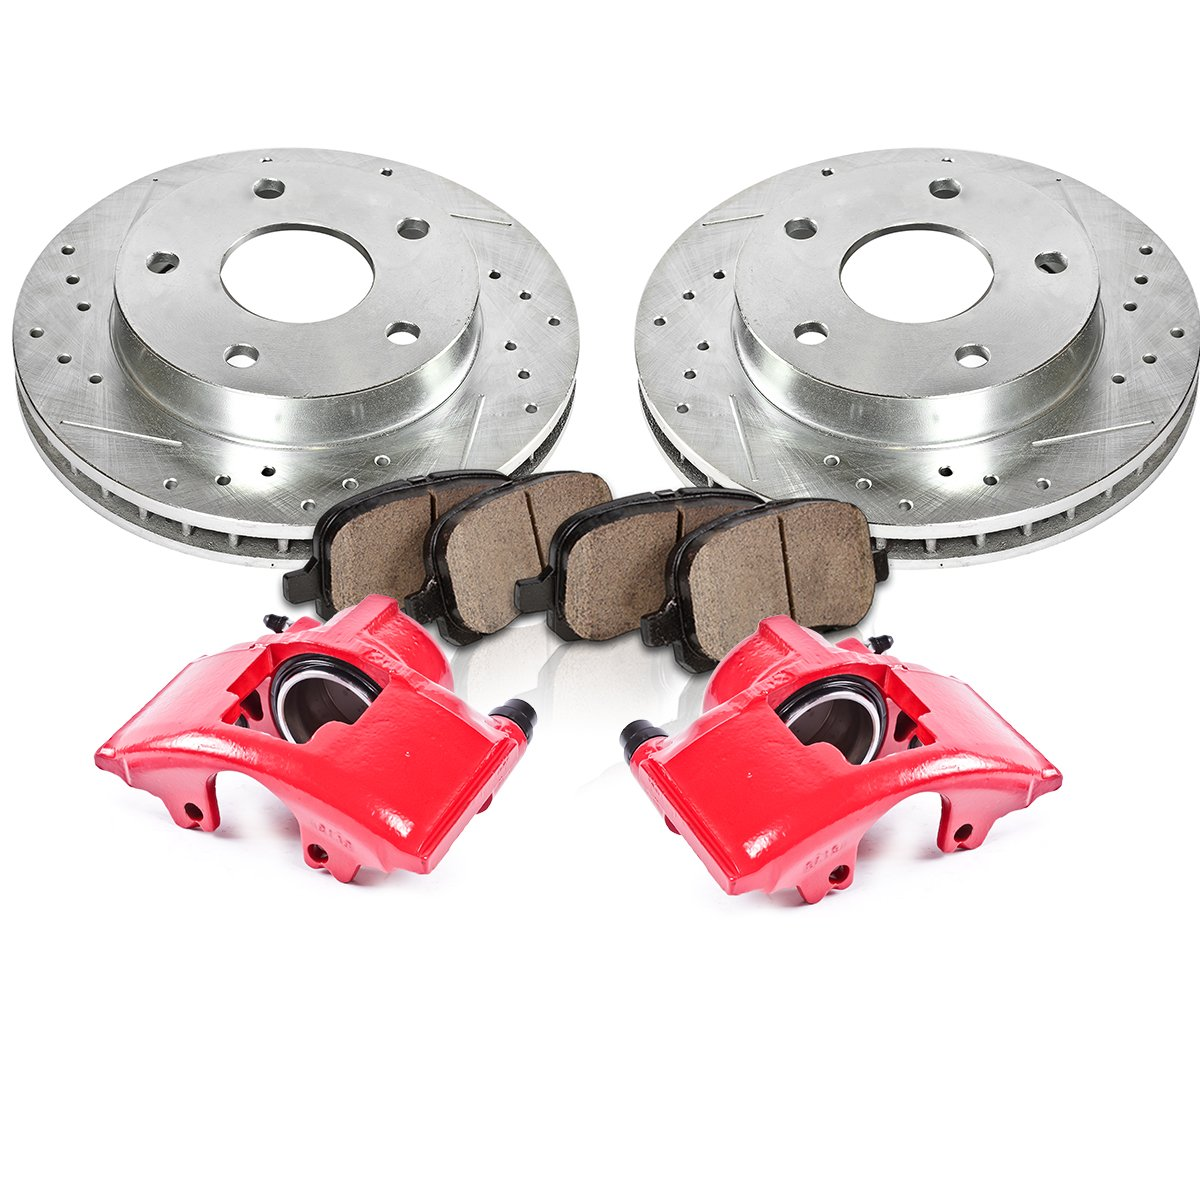 FRONT Red [2] Calipers + [2] Rotors + Quiet Low Dust [4] Ceramic Pads Performance Kit Callahan Brake Parts